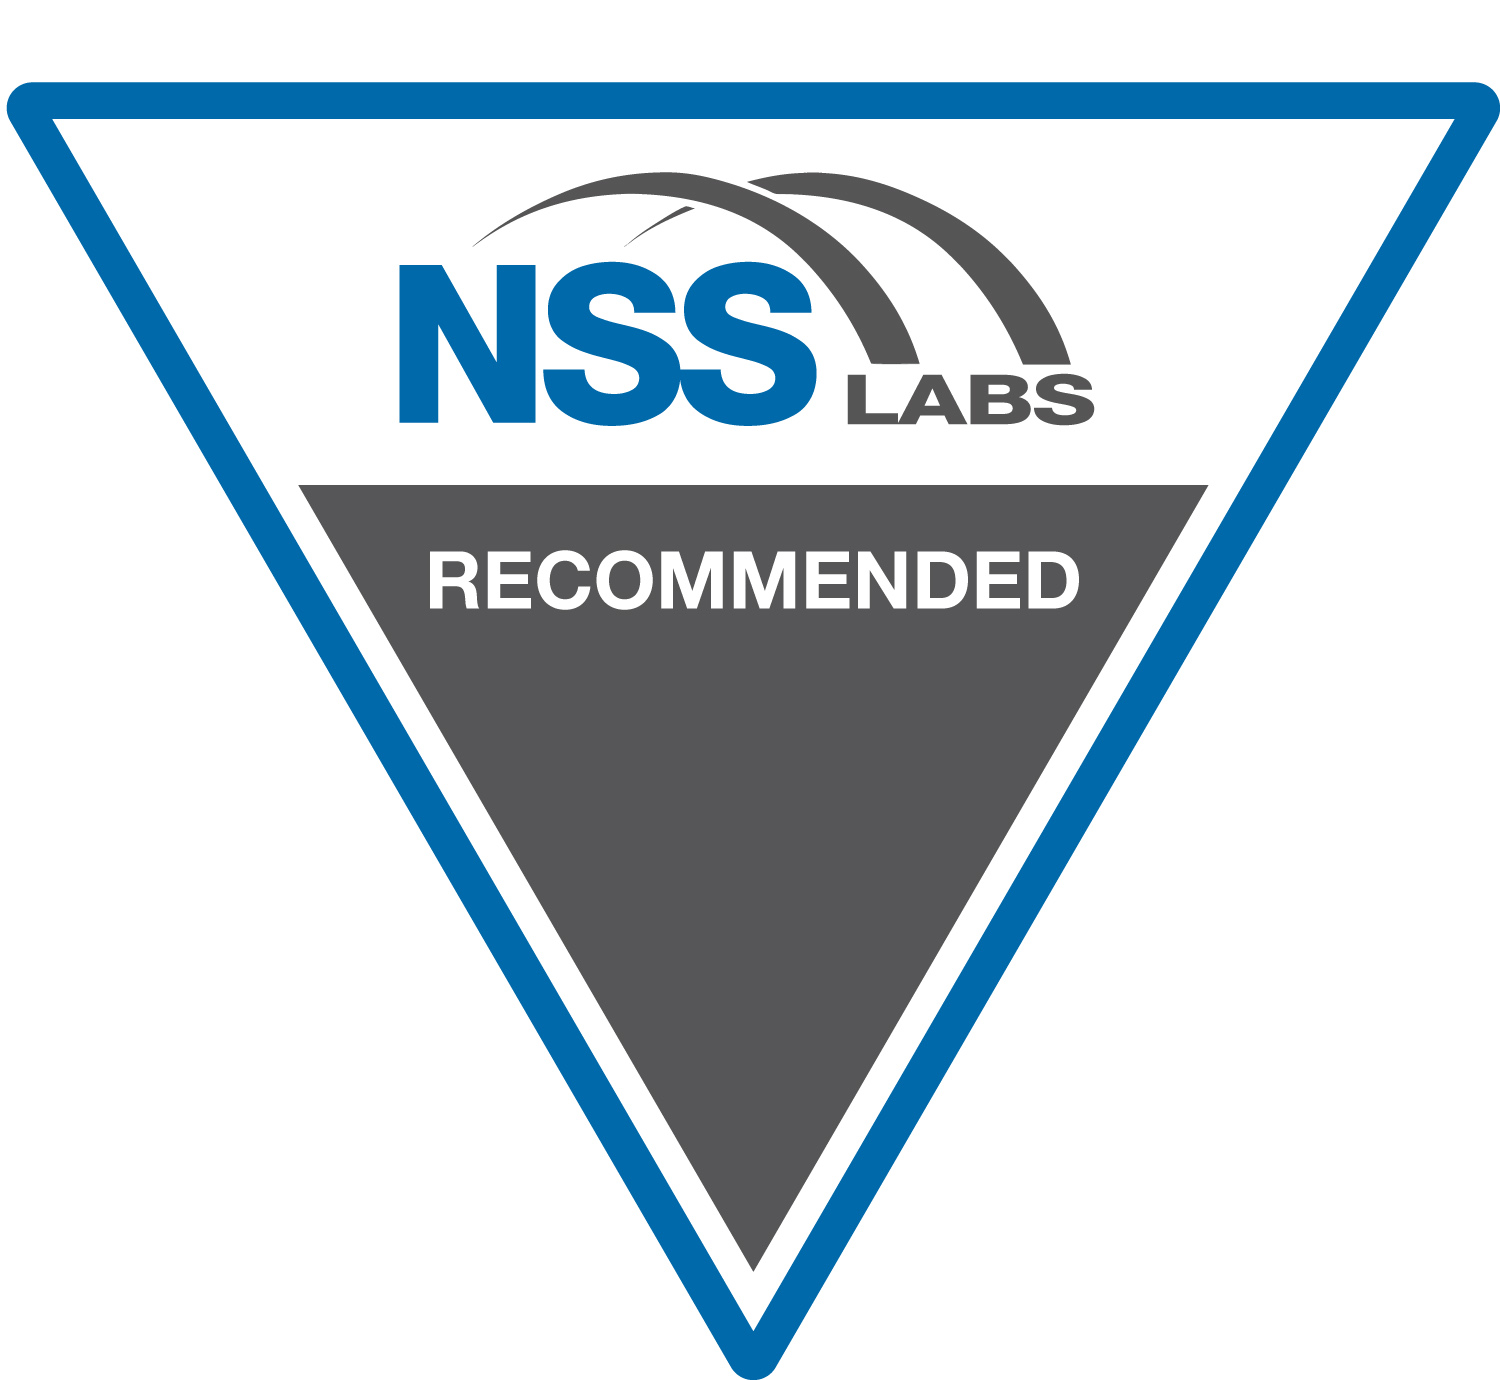 NSS-Recommended-Hi-RB19341